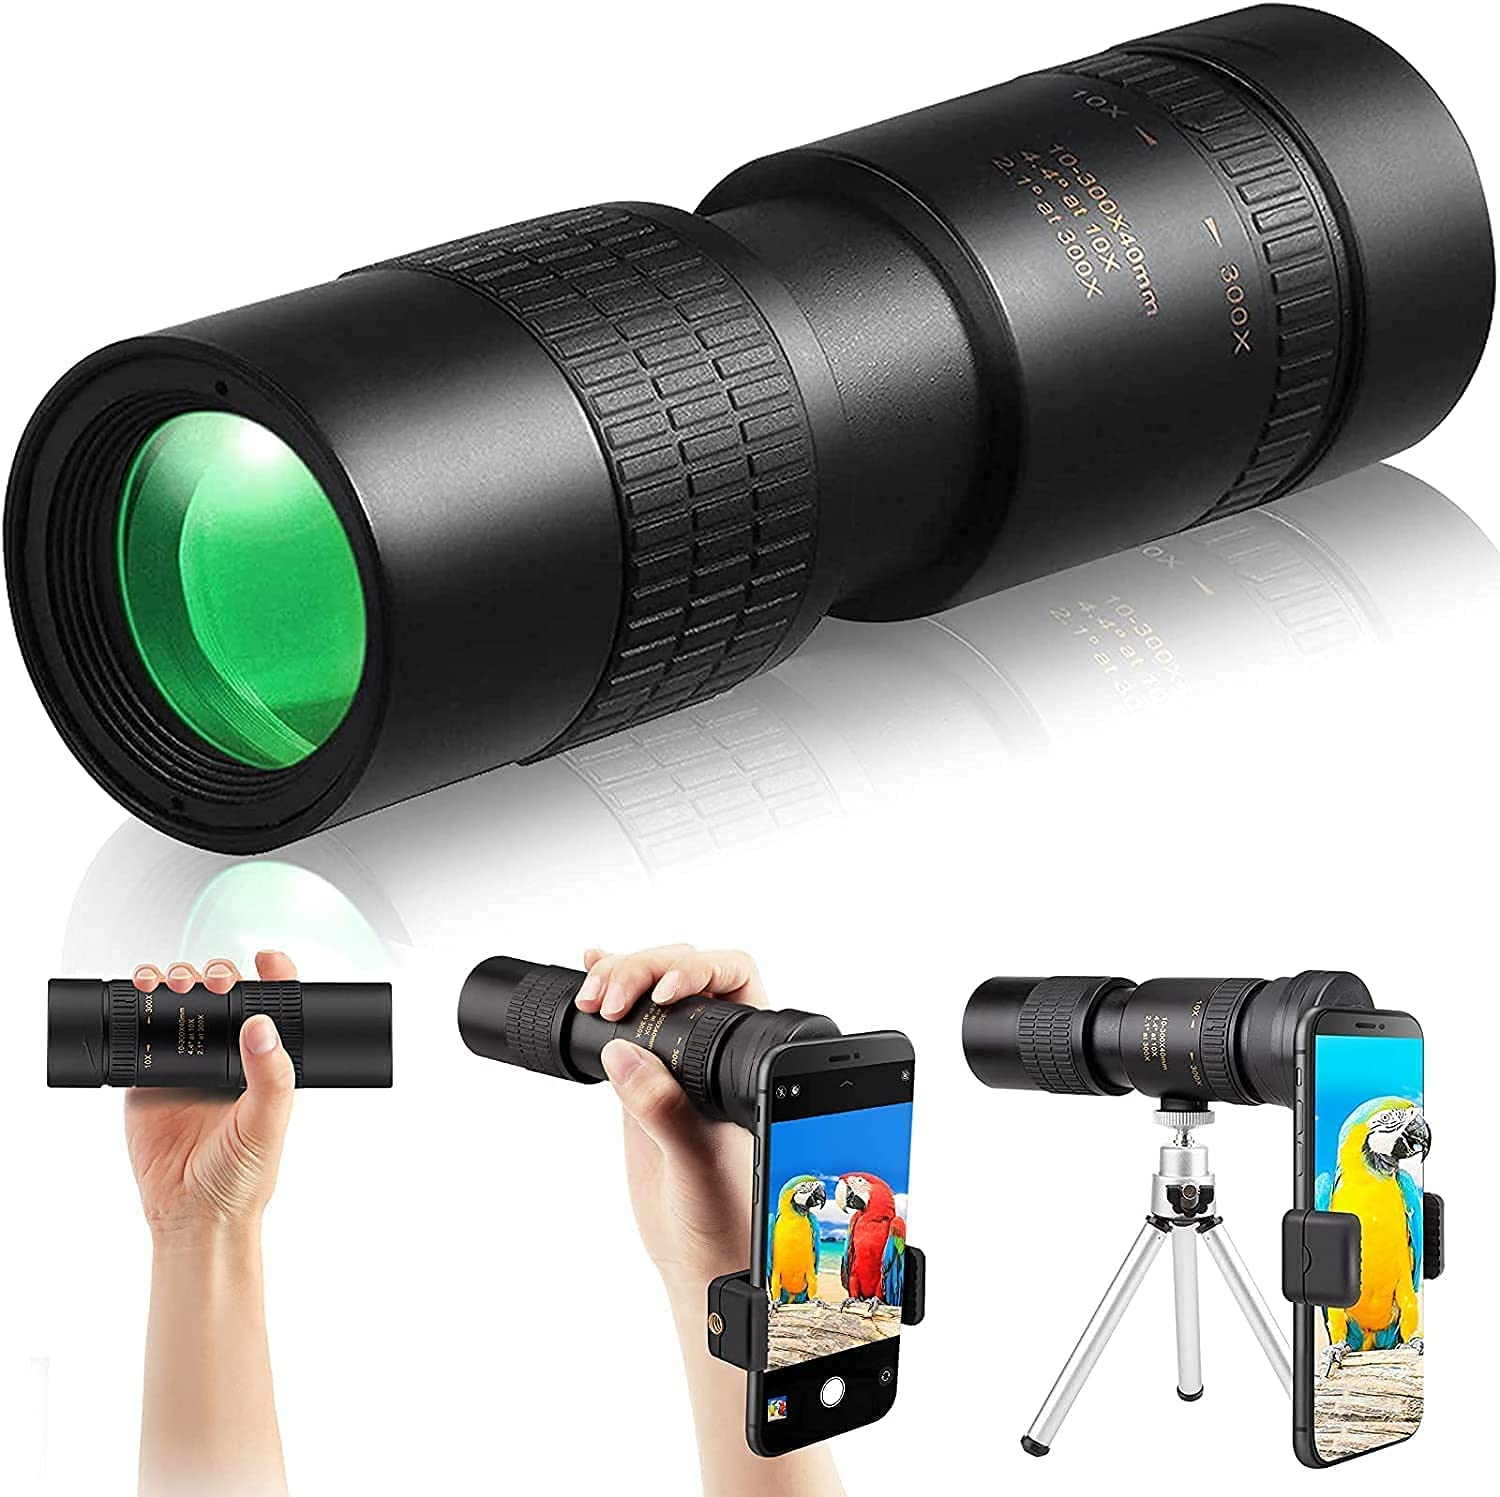 Necesa Monocular Telescope 10X300-40mm fo Outlet SALE Monoculars High Power Al sold out.